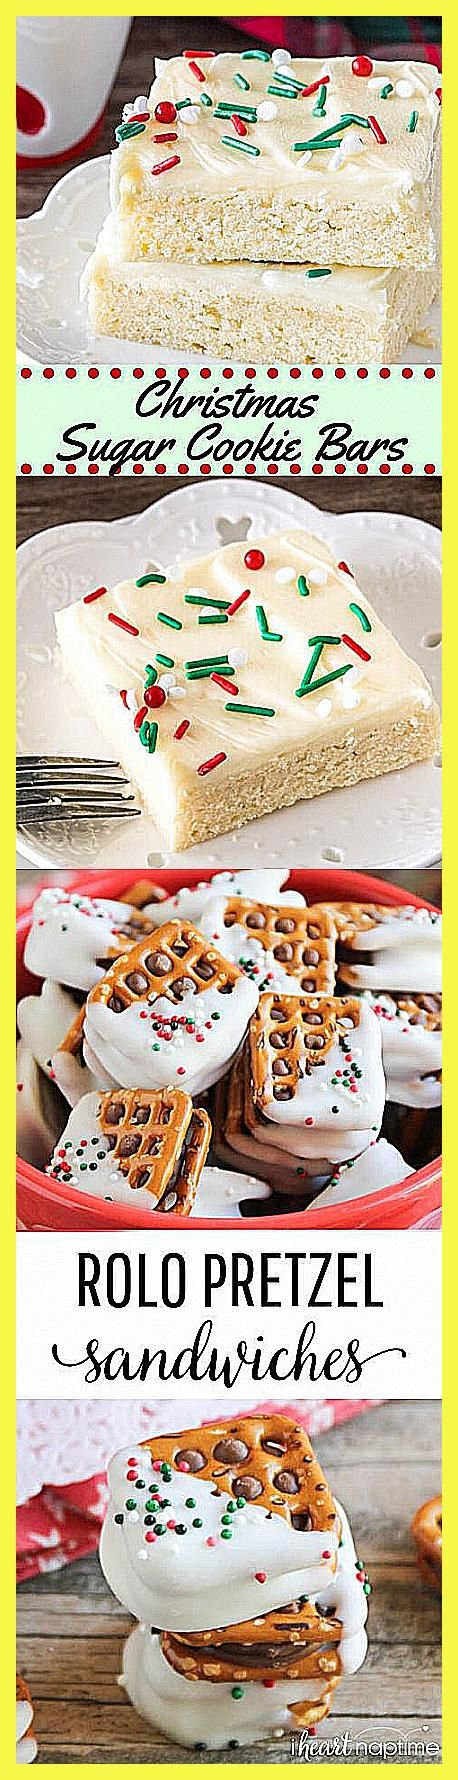 Save time this holiday season with this easy Christmas sugar cookie bars. They're extra soft with a thick layer of frosting, and way less work than sugar cookies! #christmascookies #christmas #easy #cookies #holidays #cookieexchange #frosting #holidays #baking Recipe from Just So Tasty  #travelstyles #christmasmeal aroundtheworldideas #newhomefortheholidays #partyholiday #holidayhomedecor #christmaslooks #holidaymakeandtake #holidayideas #travelideas #christmasideas